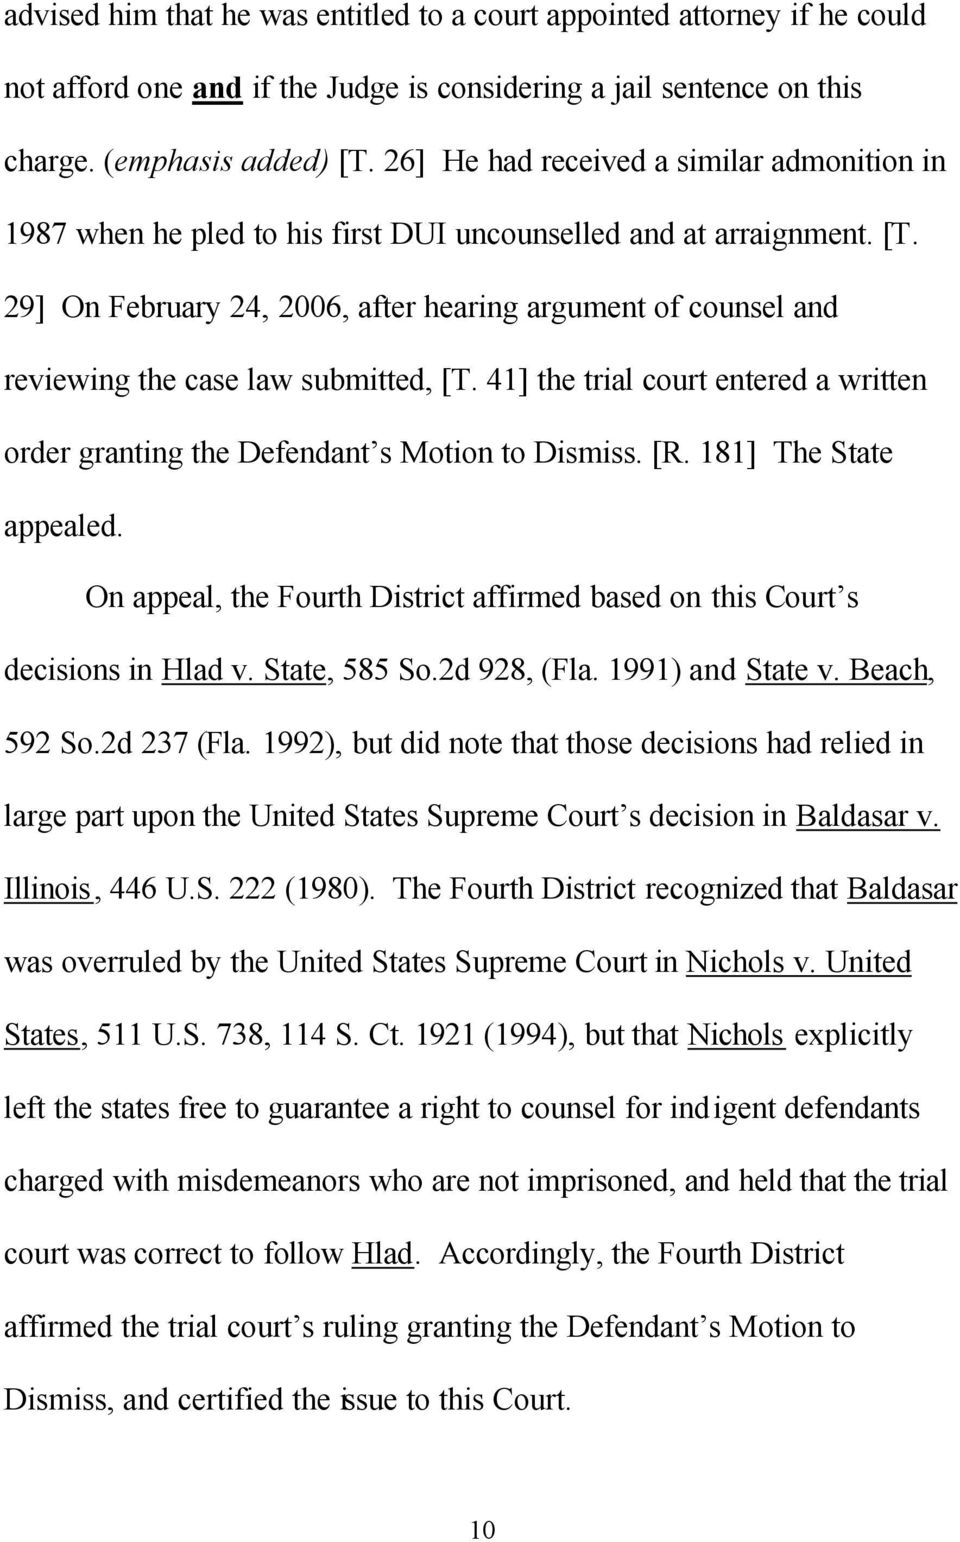 29] On February 24, 2006, after hearing argument of counsel and reviewing the case law submitted, [T. 41] the trial court entered a written order granting the Defendant s Motion to Dismiss. [R.